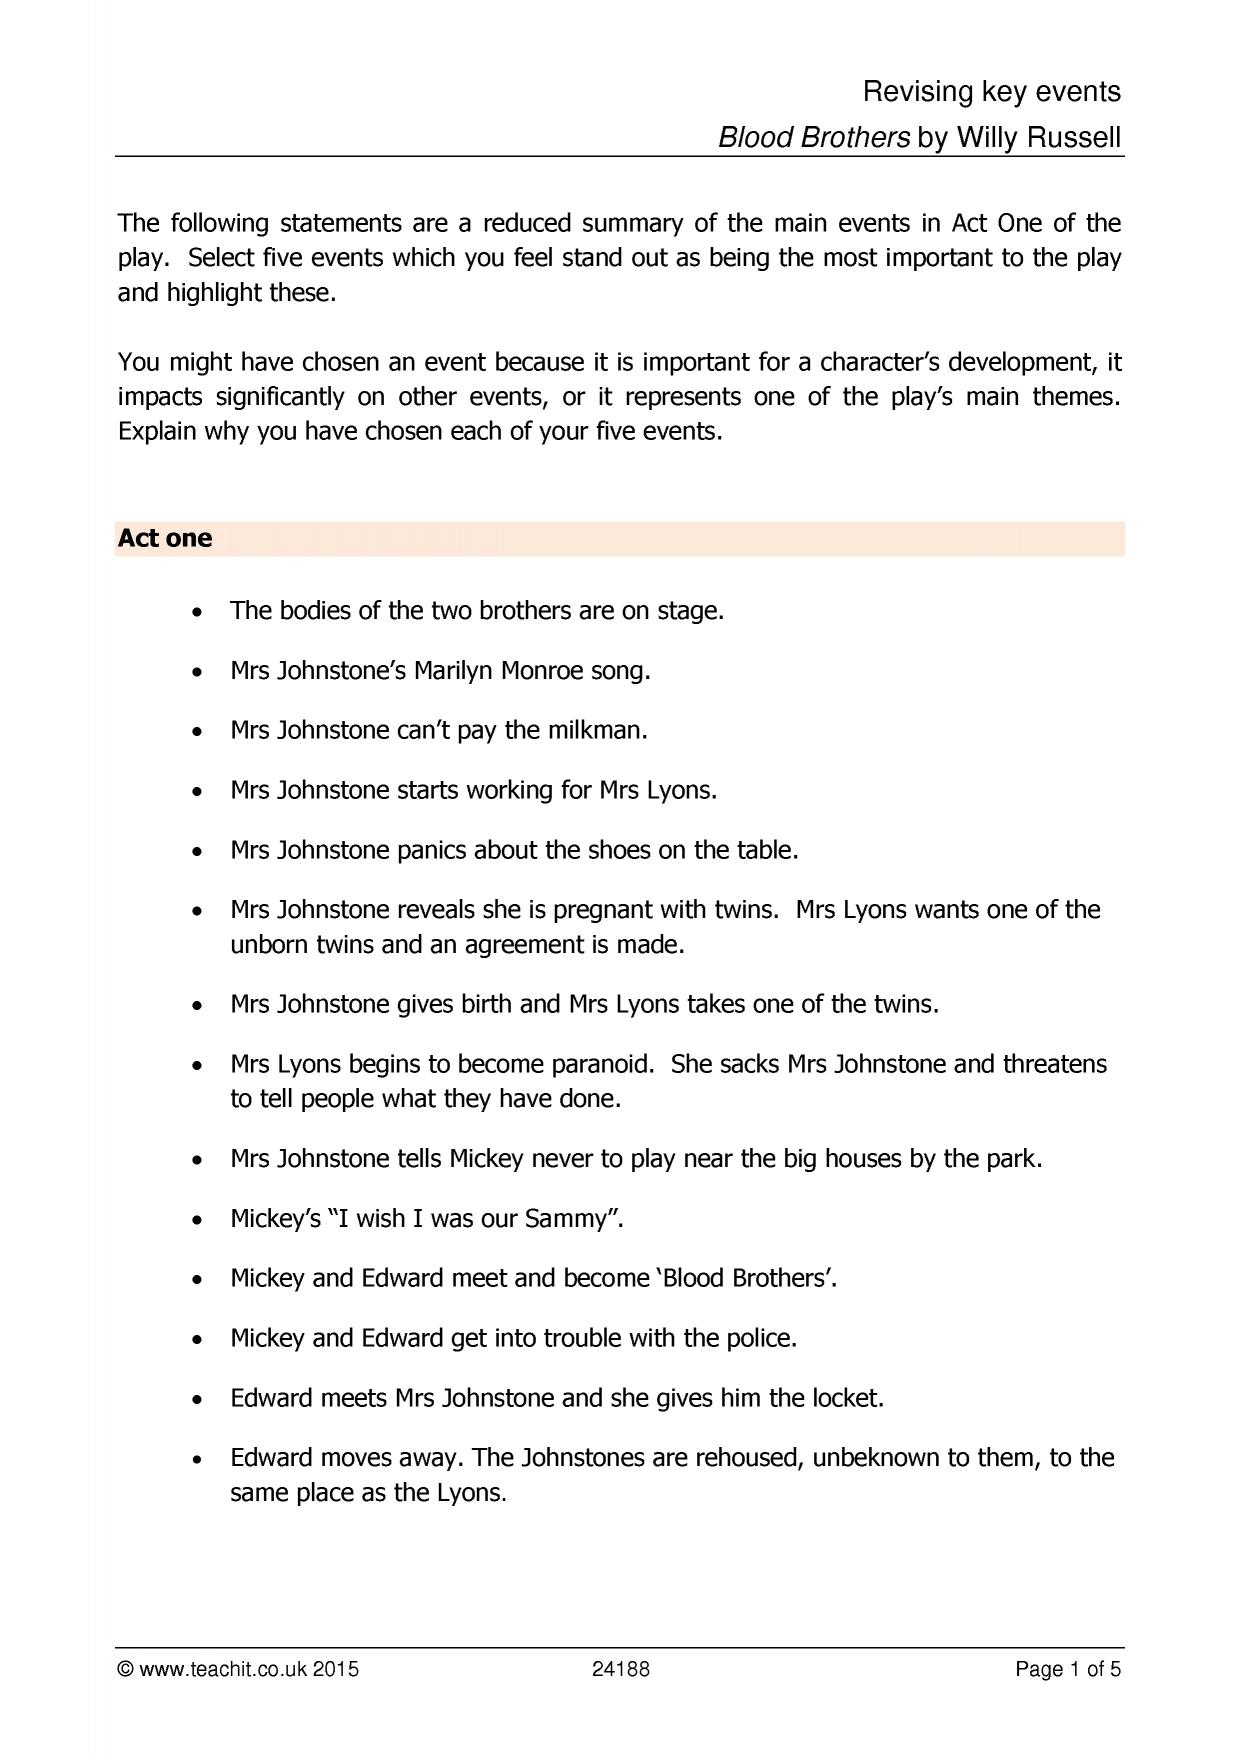 blood brother essay questions Grade 9-1 gcse english text guide - blood brothers this amazing text guide contains everything you need to write top-grade essays about willy russell's blood.